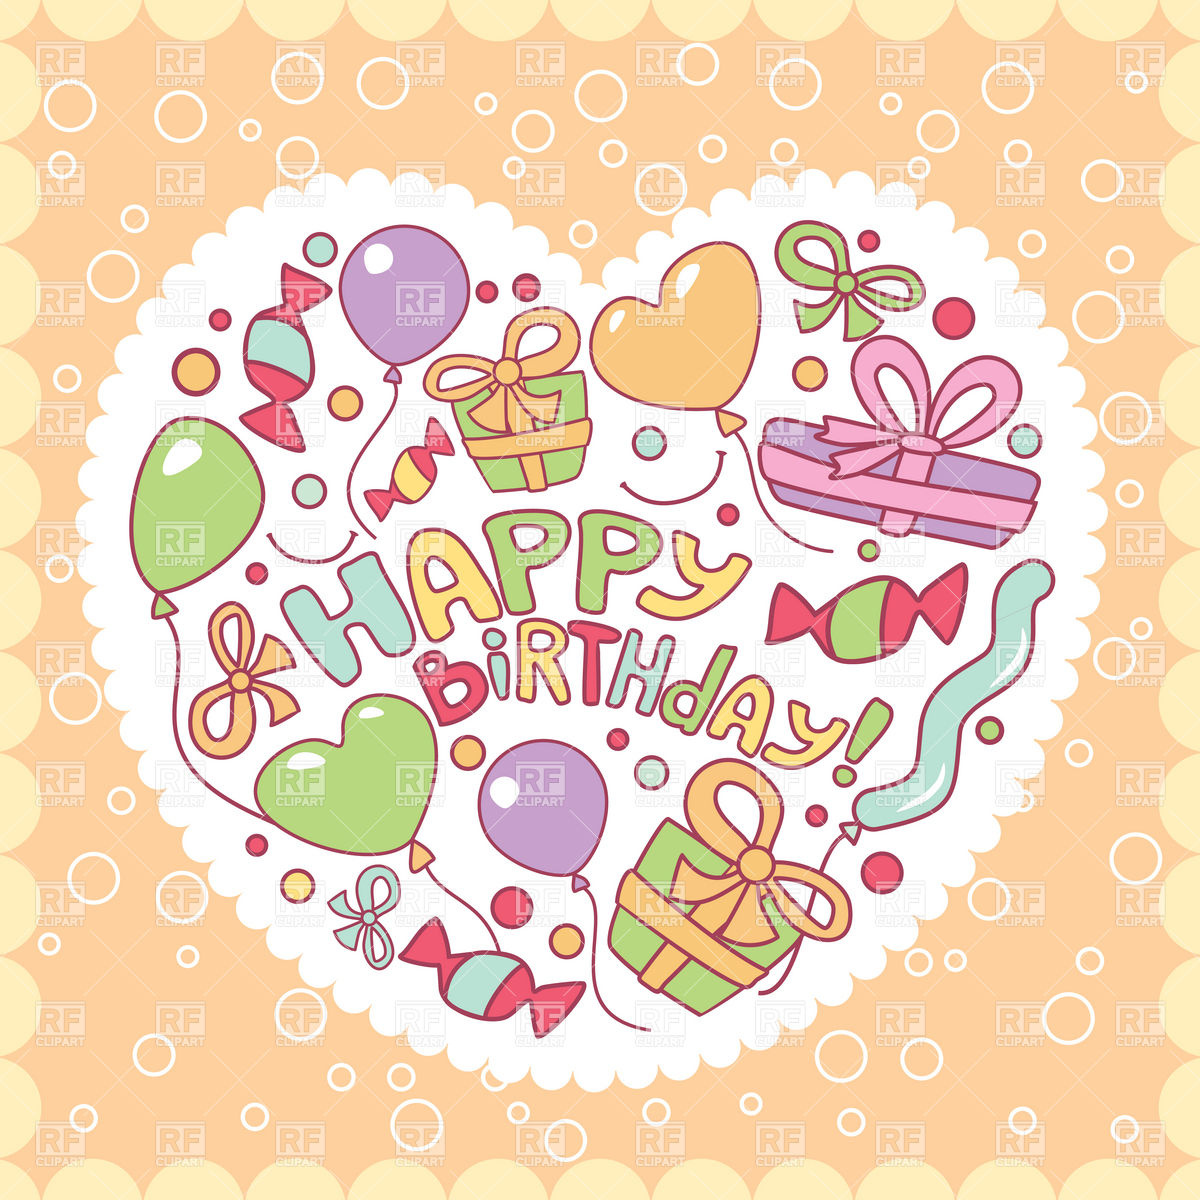 happy birthday card with photo free ; happy-birthday-greeting-card-with-gifts-and-balloons-Download-Royalty-free-Vector-File-EPS-40295